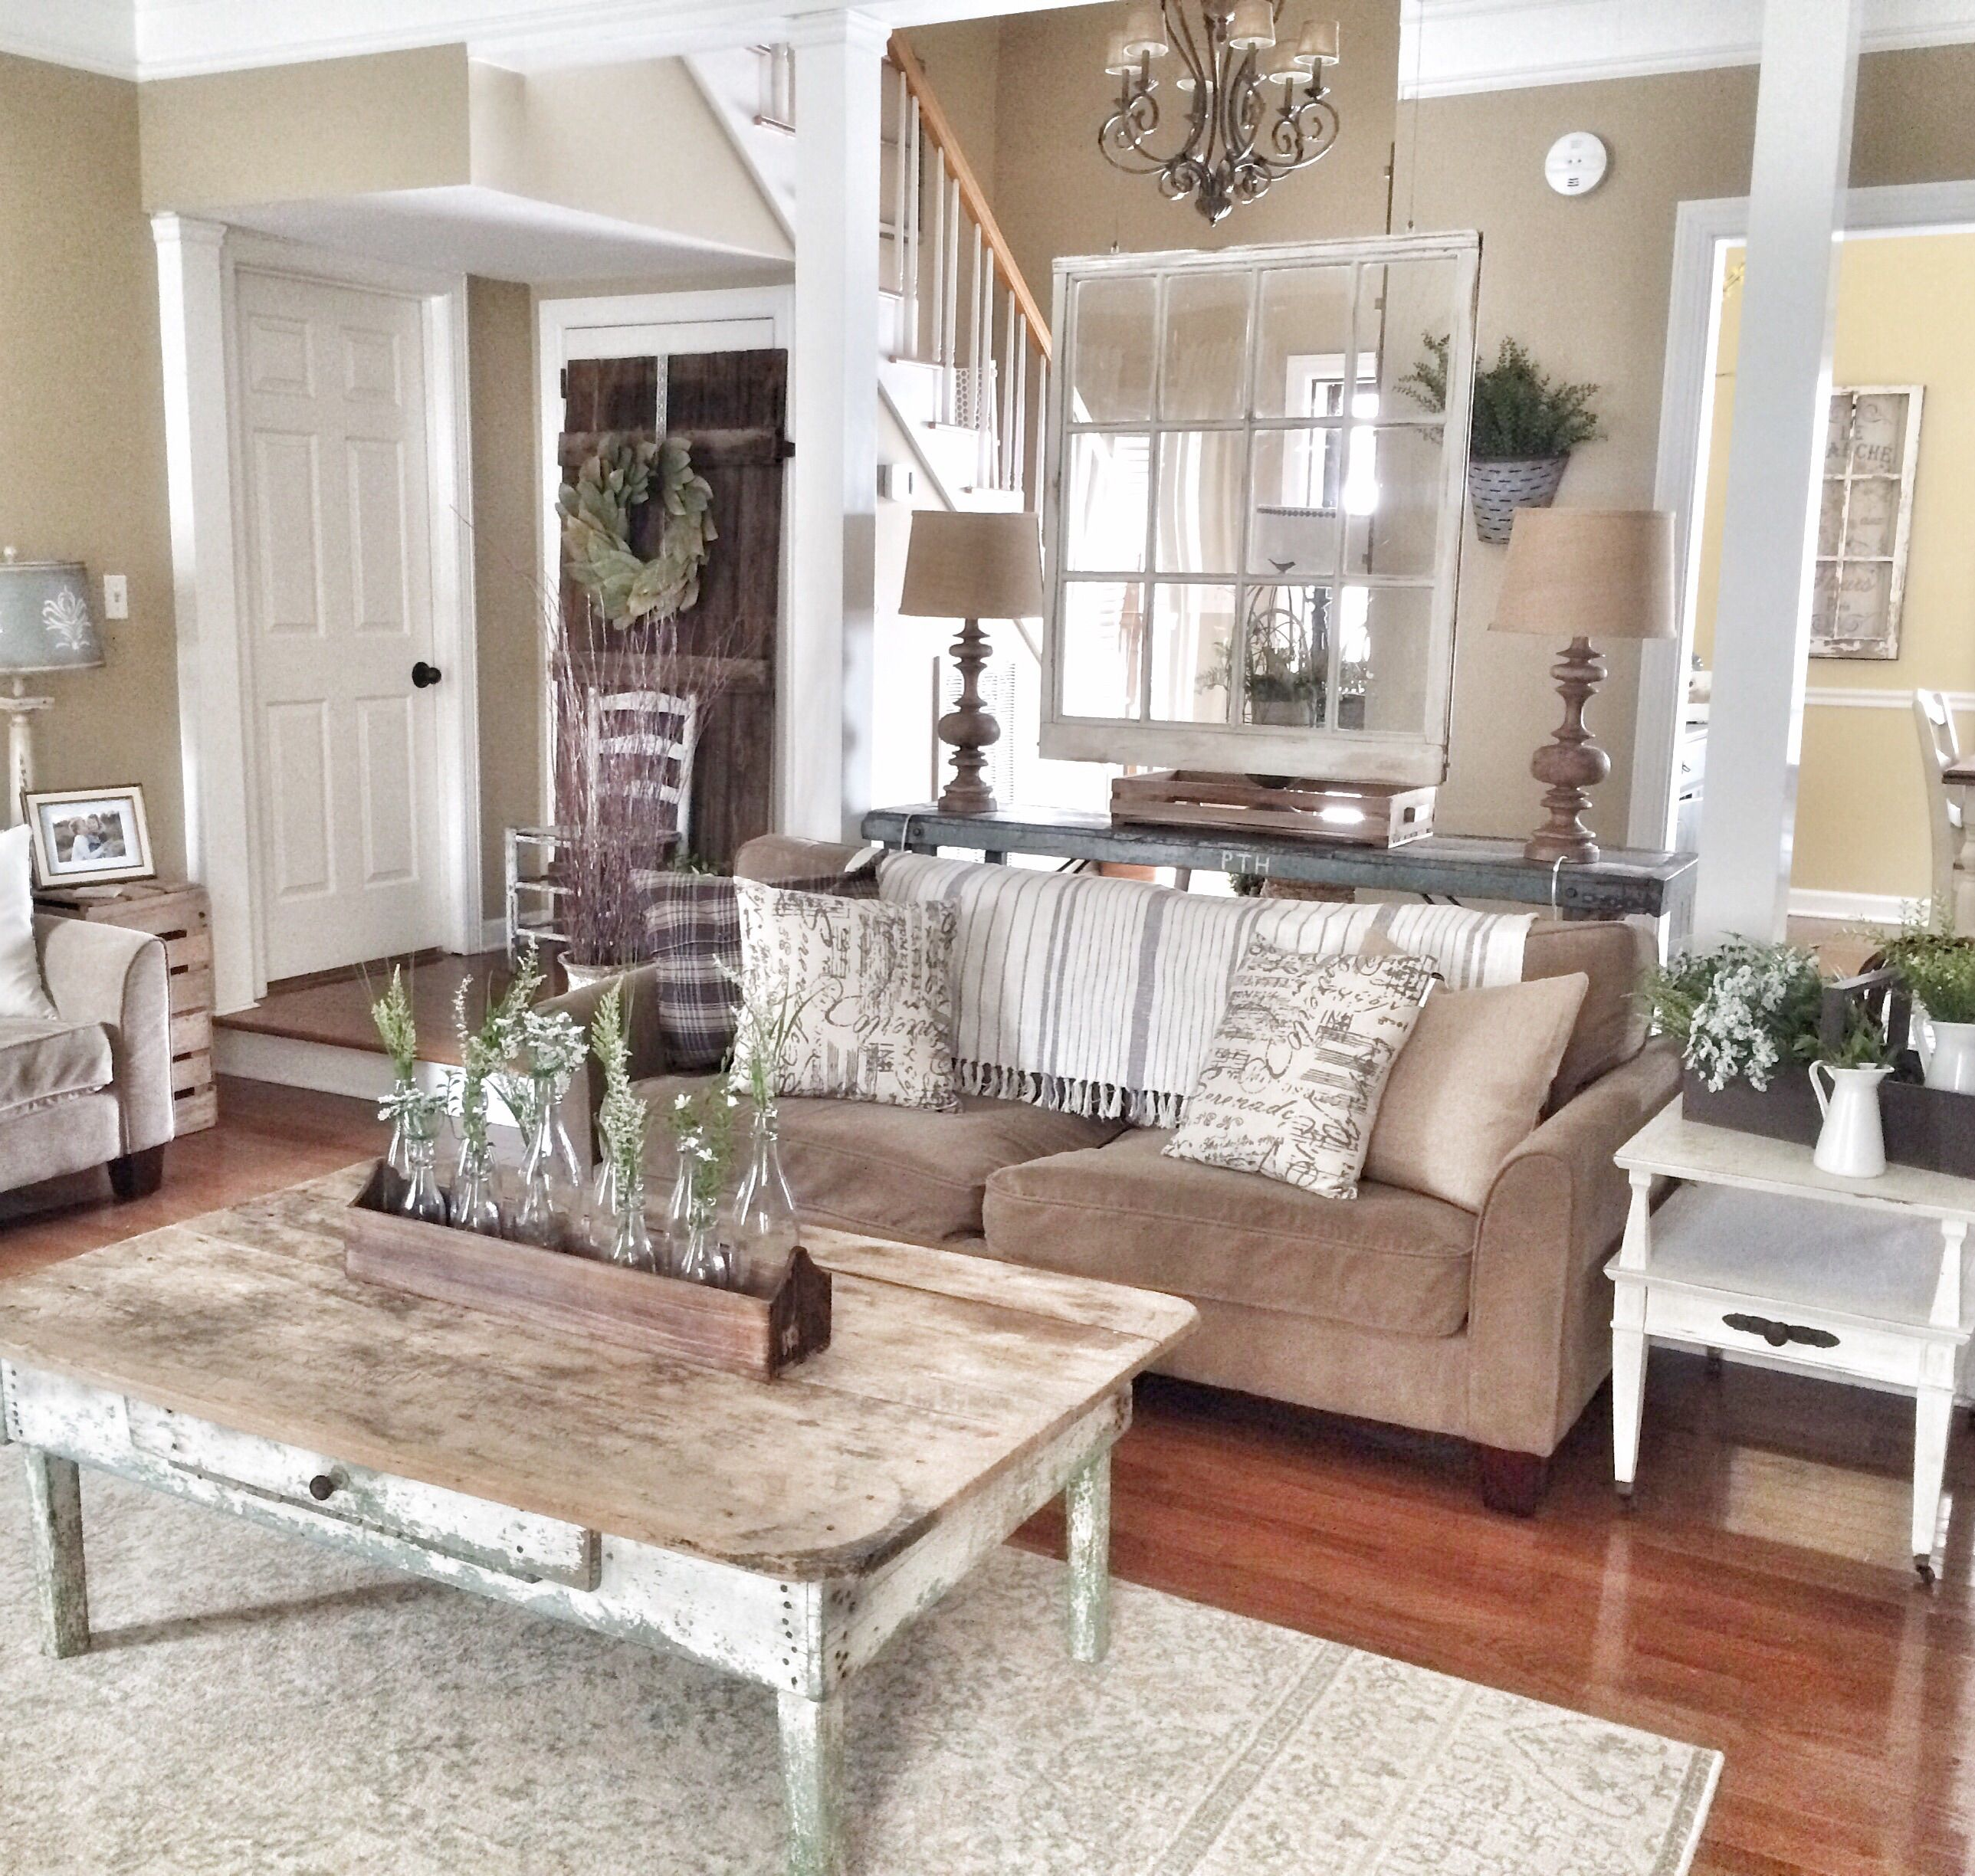 Distressed Farmhouse Living Room: 27 Comfy Farmhouse Living Room Designs To Steal